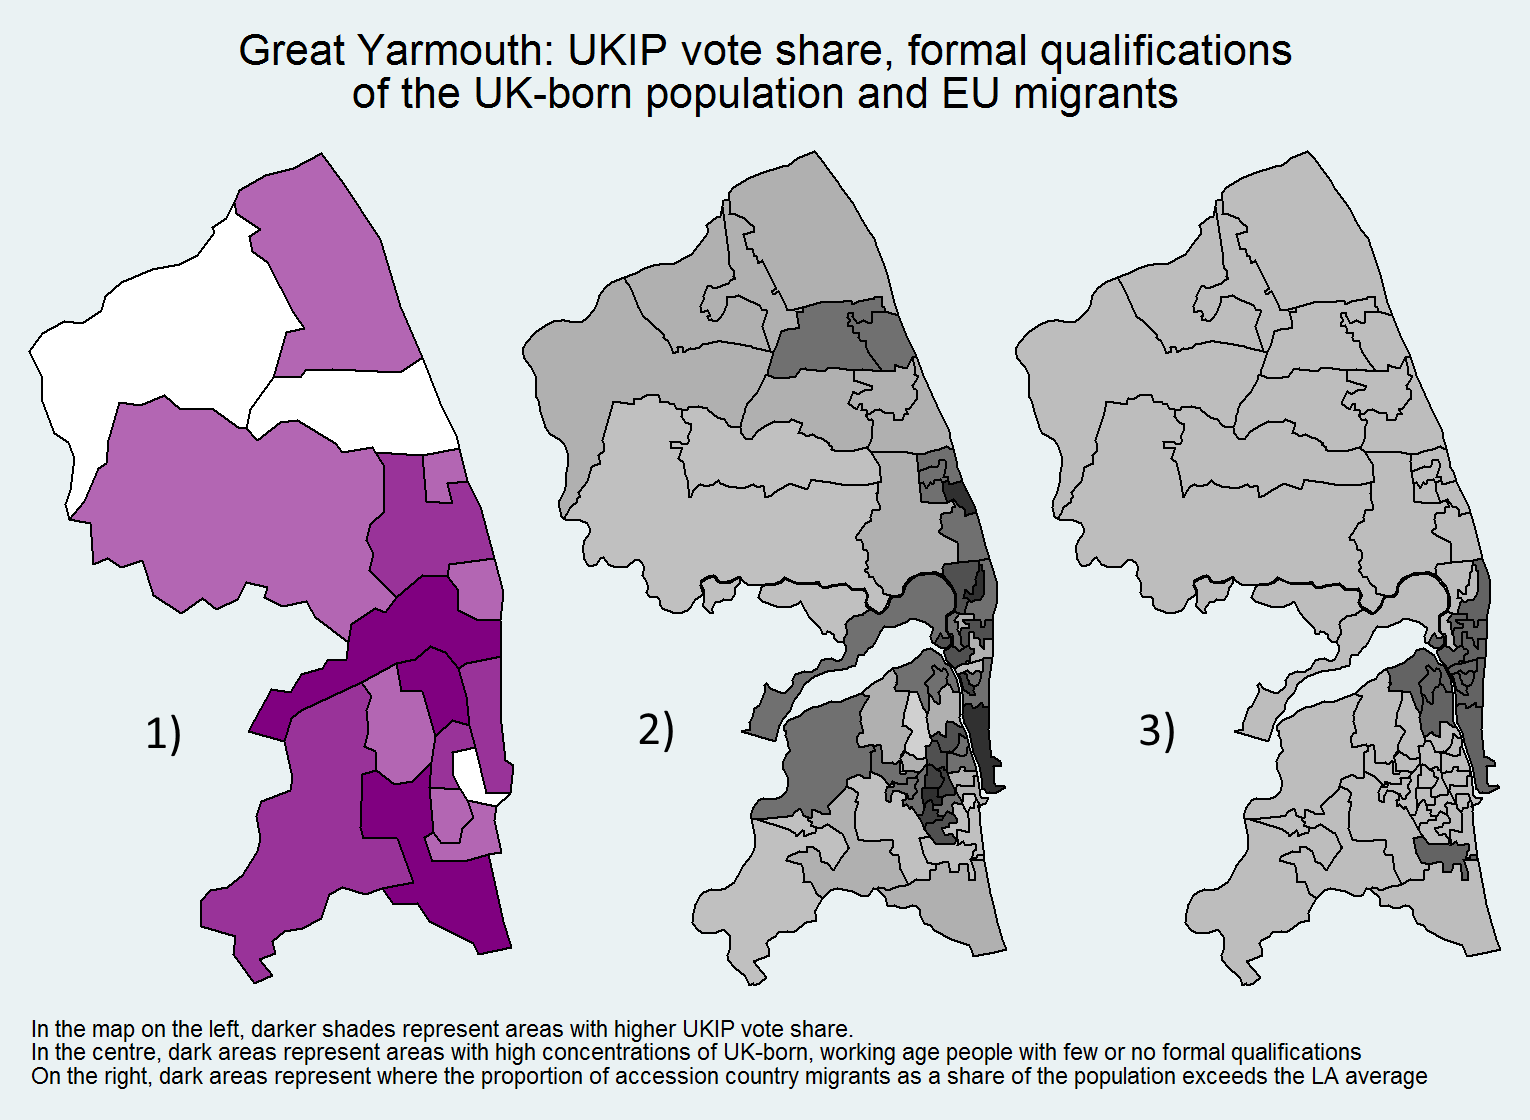 While We Cannot Be Certain That The Interaction Effect Between Accession Country Diasporas And Poorly Qualified Uk Born Residents Affects Ukip Support